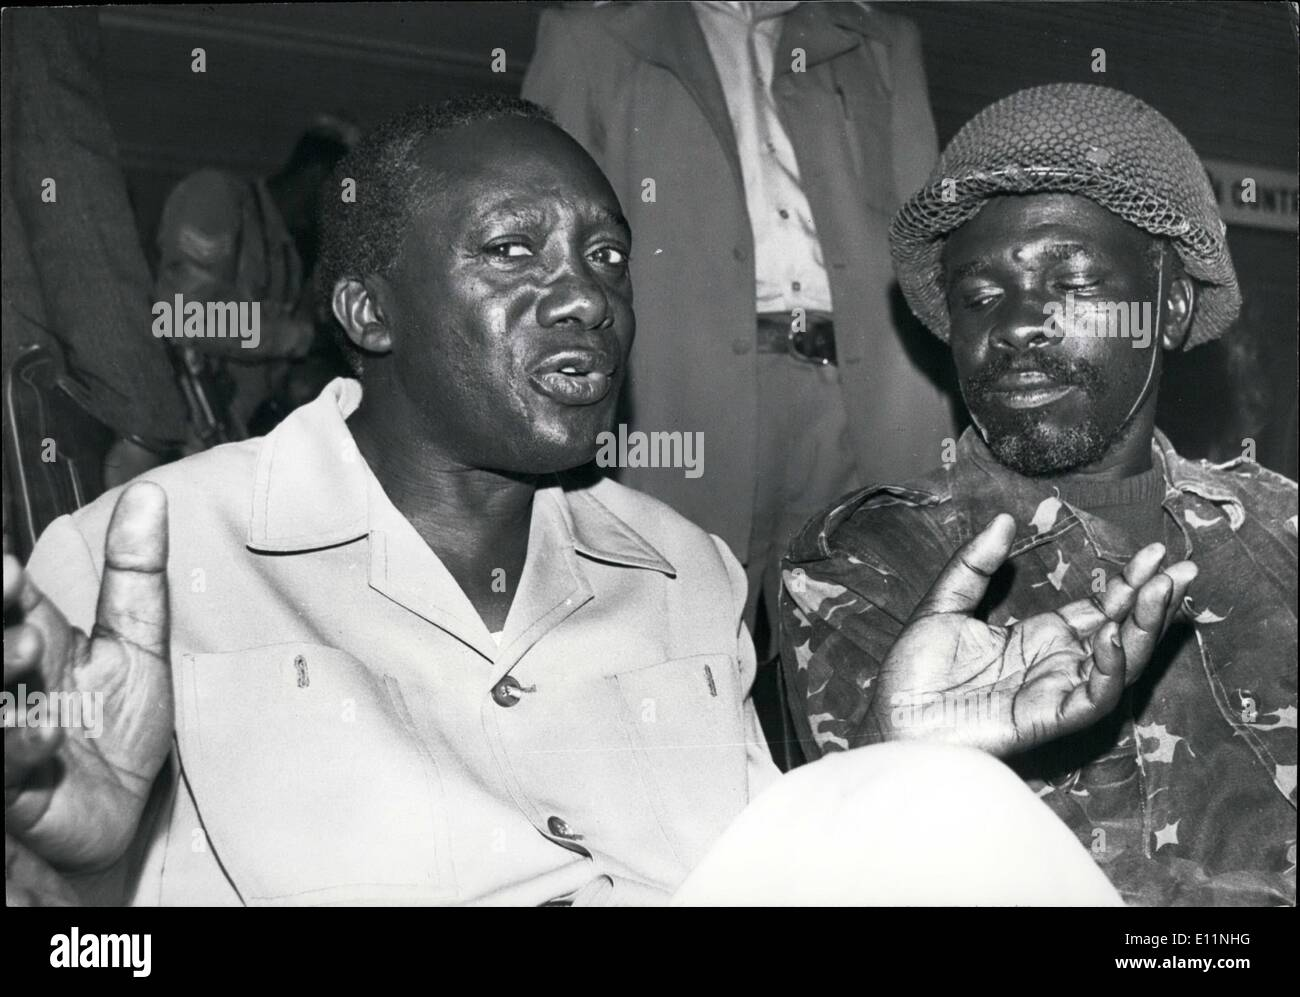 Apr. 04, 1979 - President Yusuf Lule, the new Head of State of Uganda with his new Chief of Staff, Lt. Col. David Oyite-Ojok. Credits: Camerapix - Stock Image